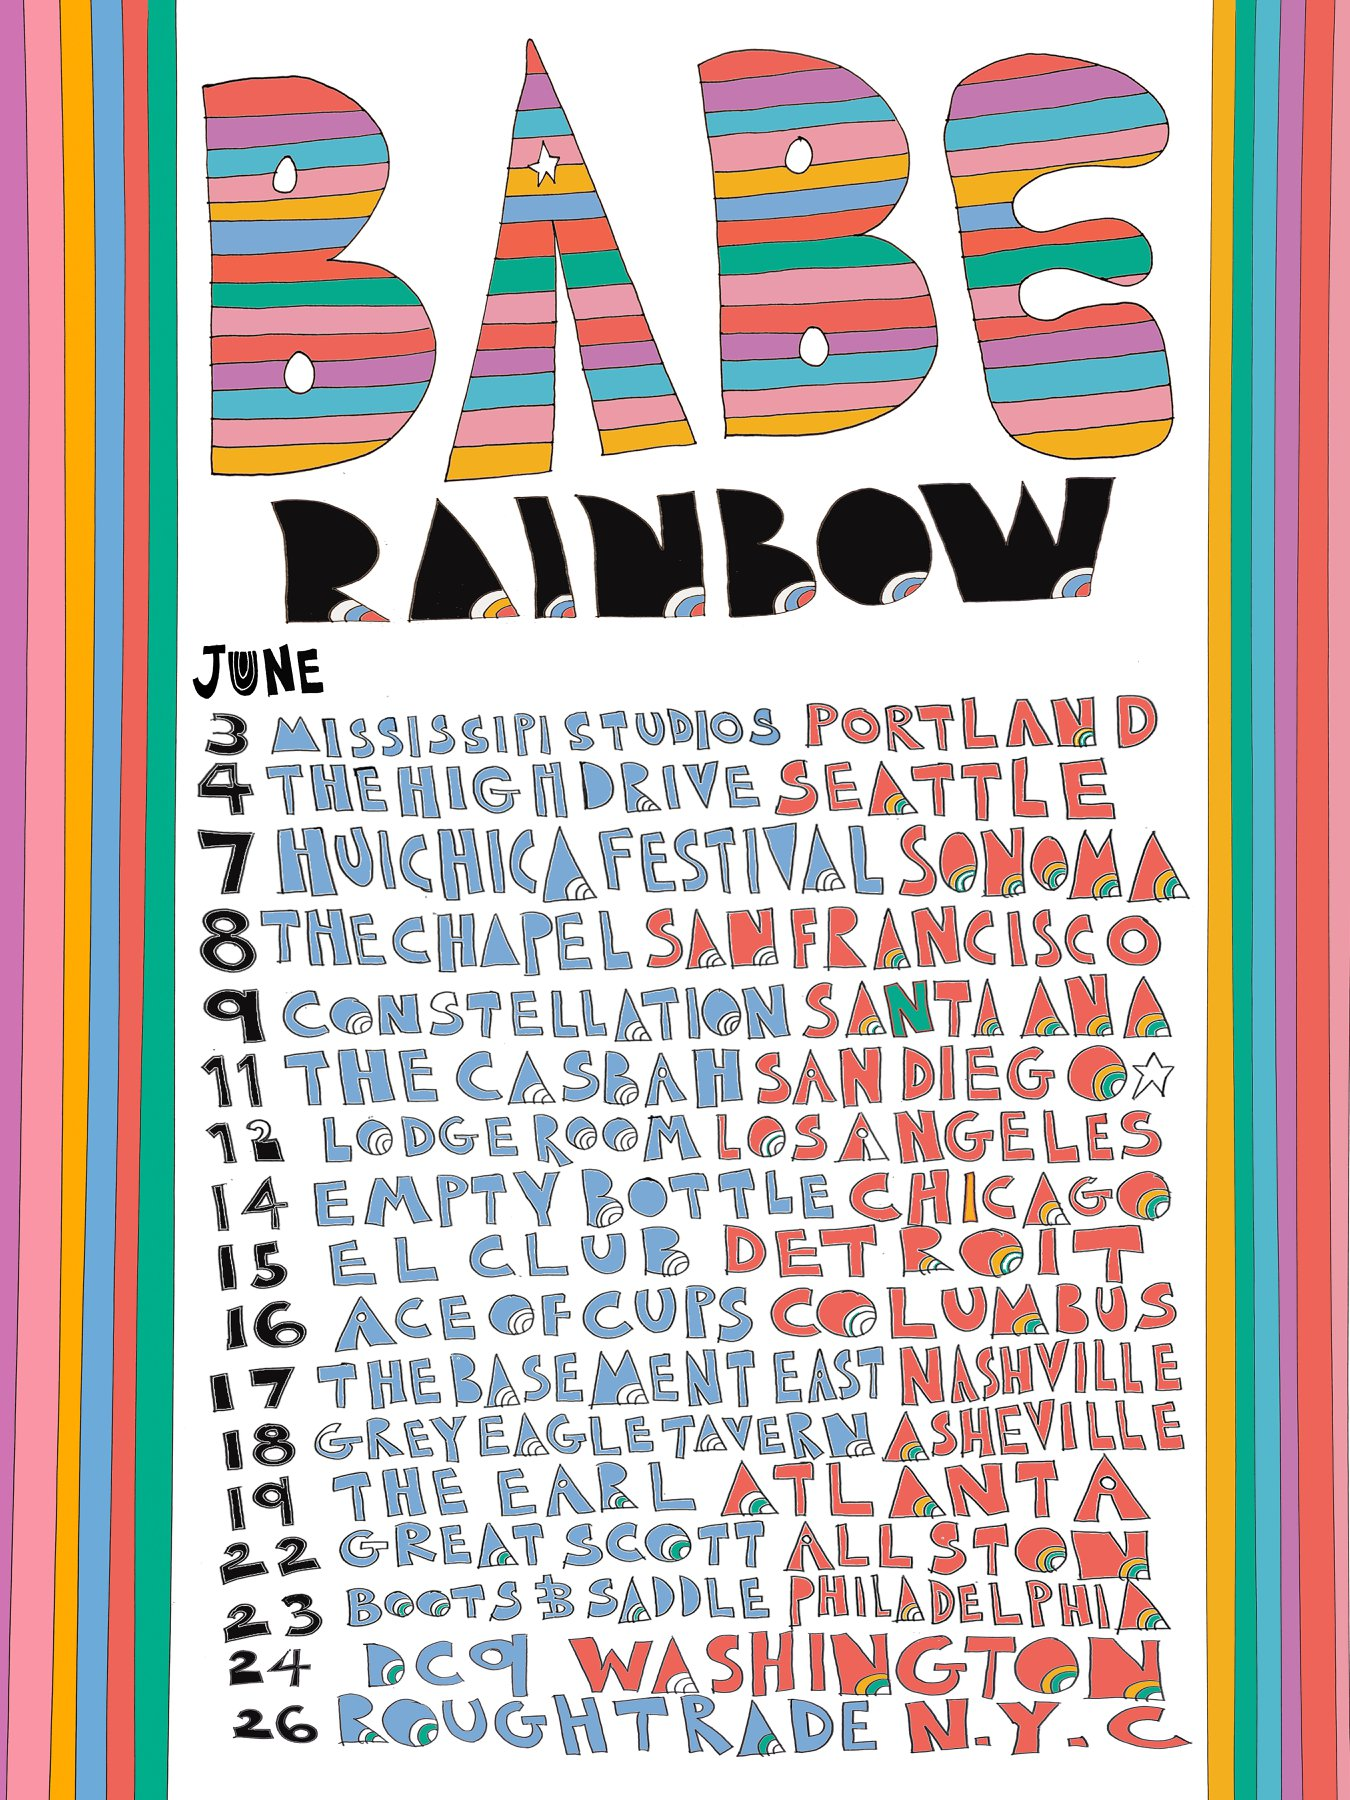 Babe Rainbow tour